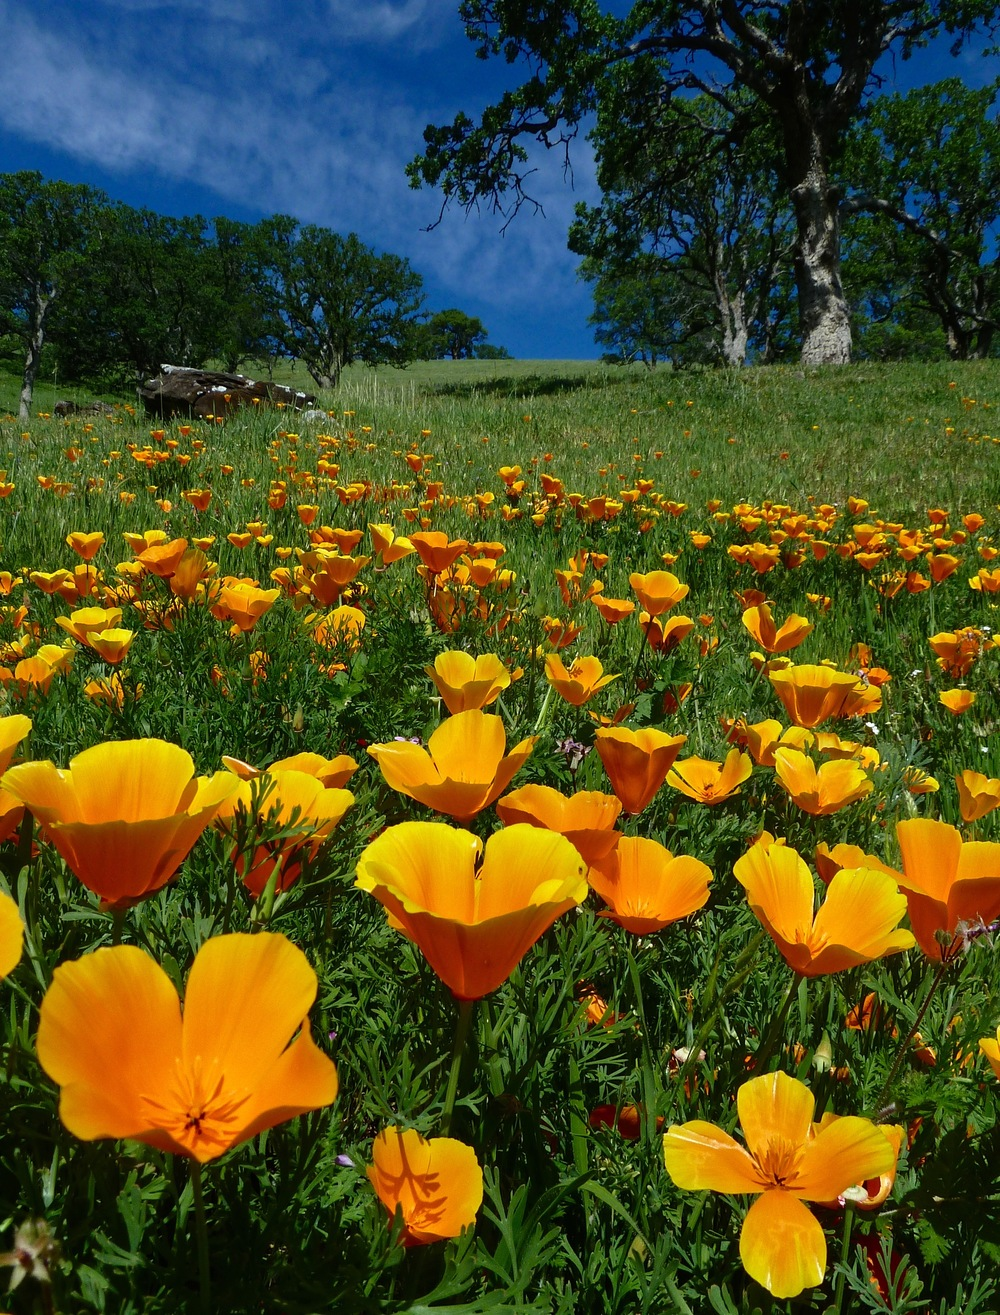 California orange poppies, Round Valley Regional Preserve.